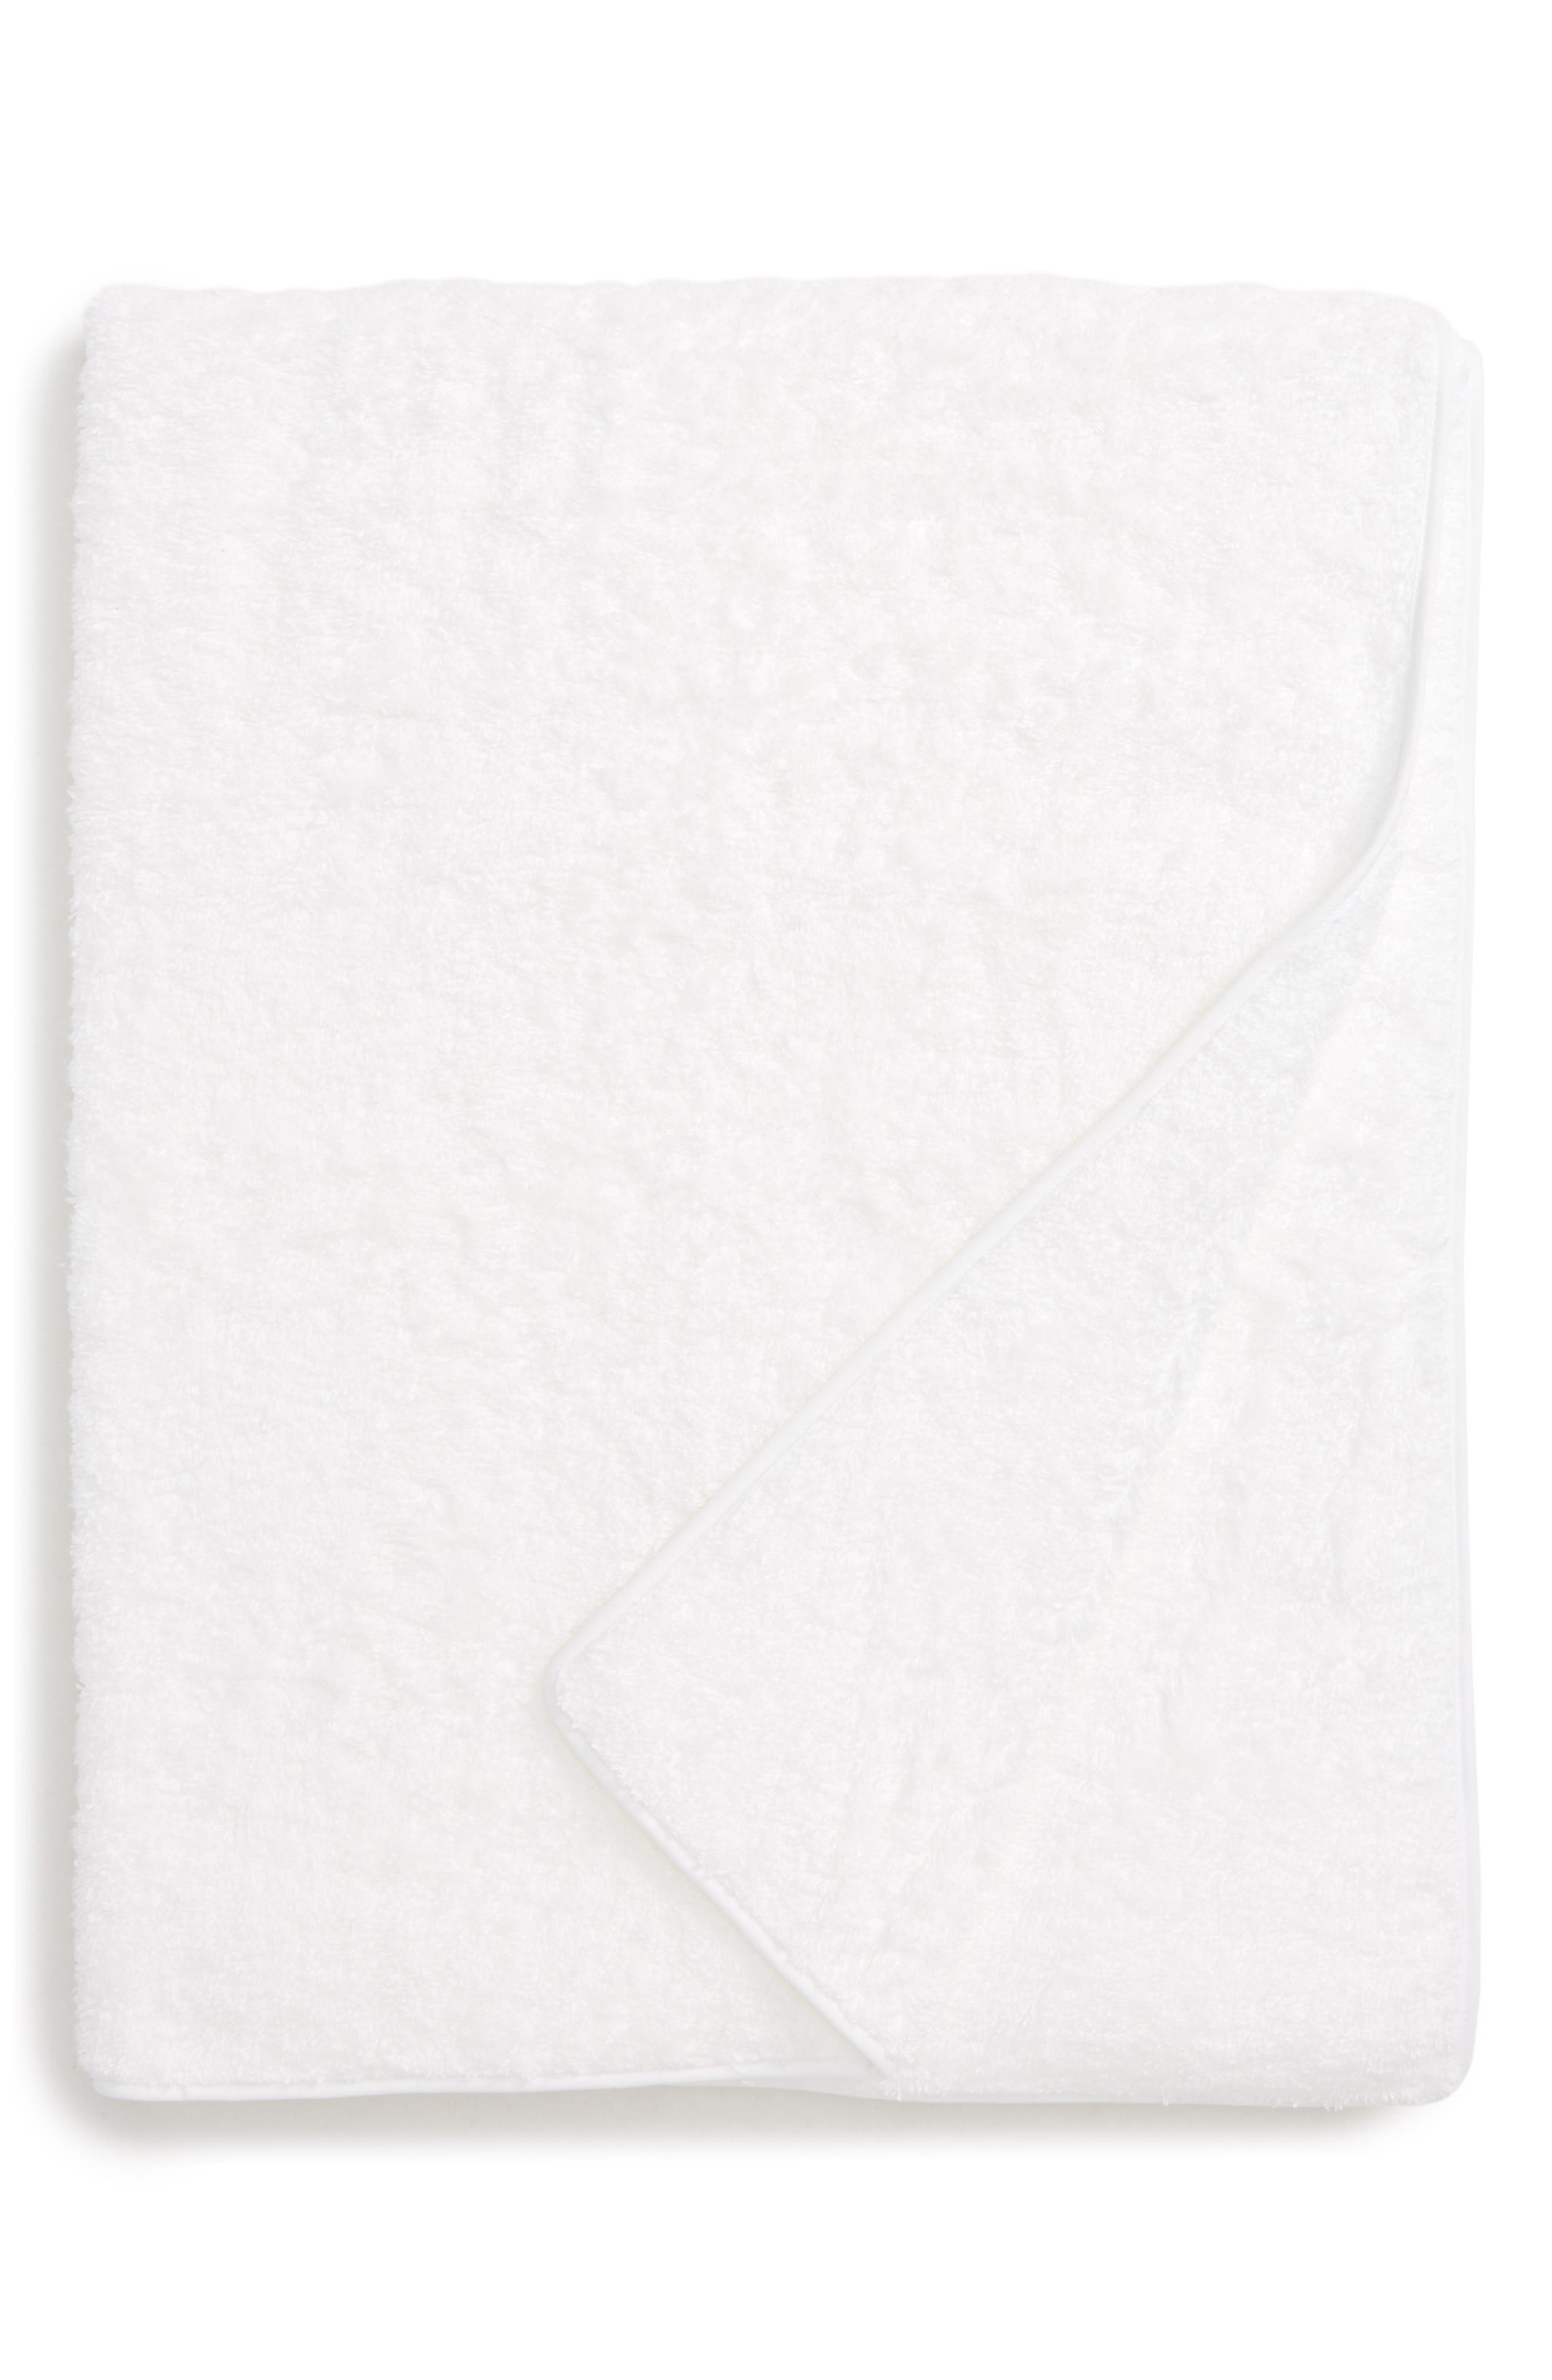 Cairo Spa Towel,                         Main,                         color, WHITE